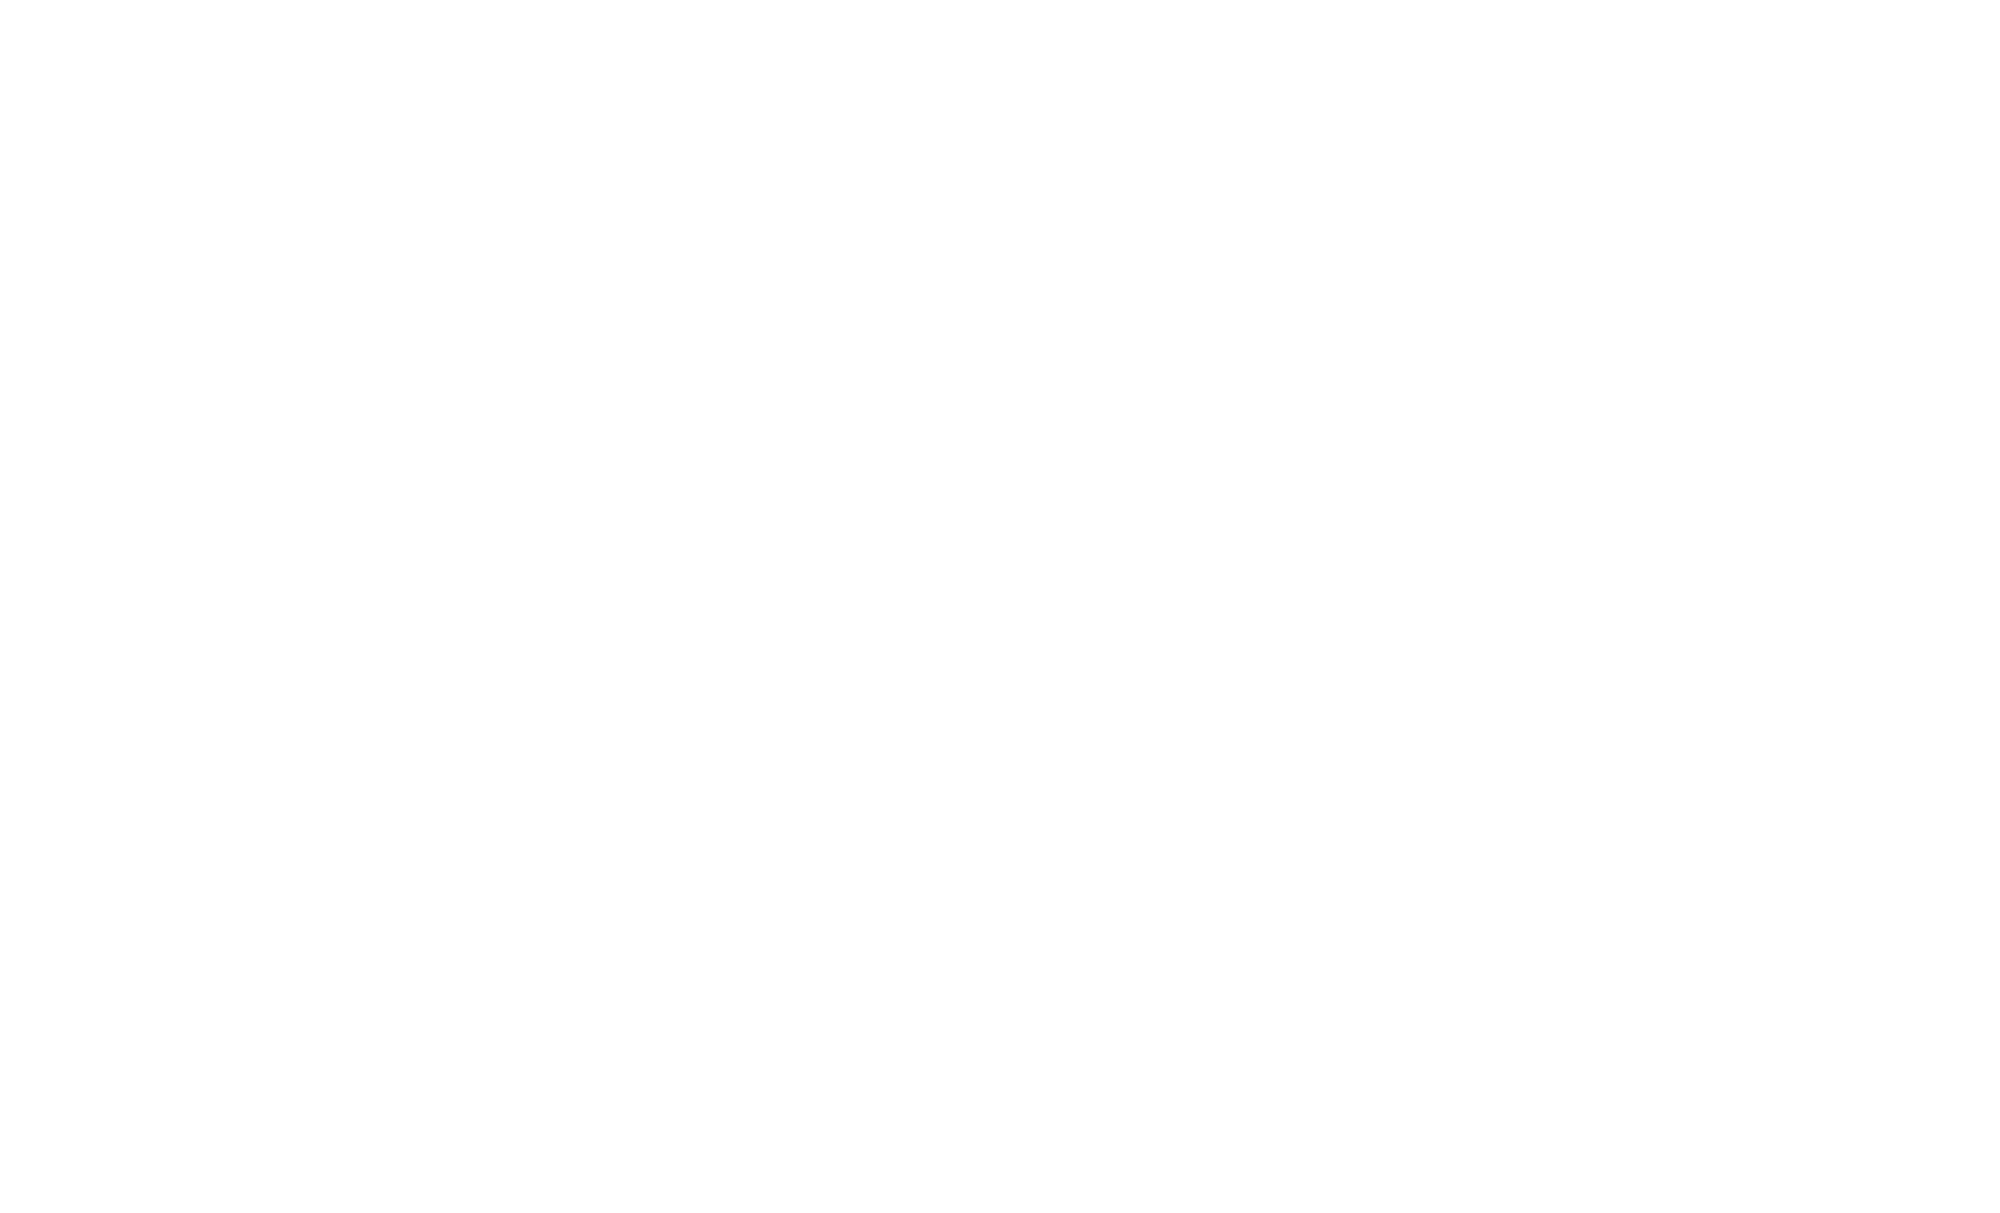 Direct Primary Care Frontier